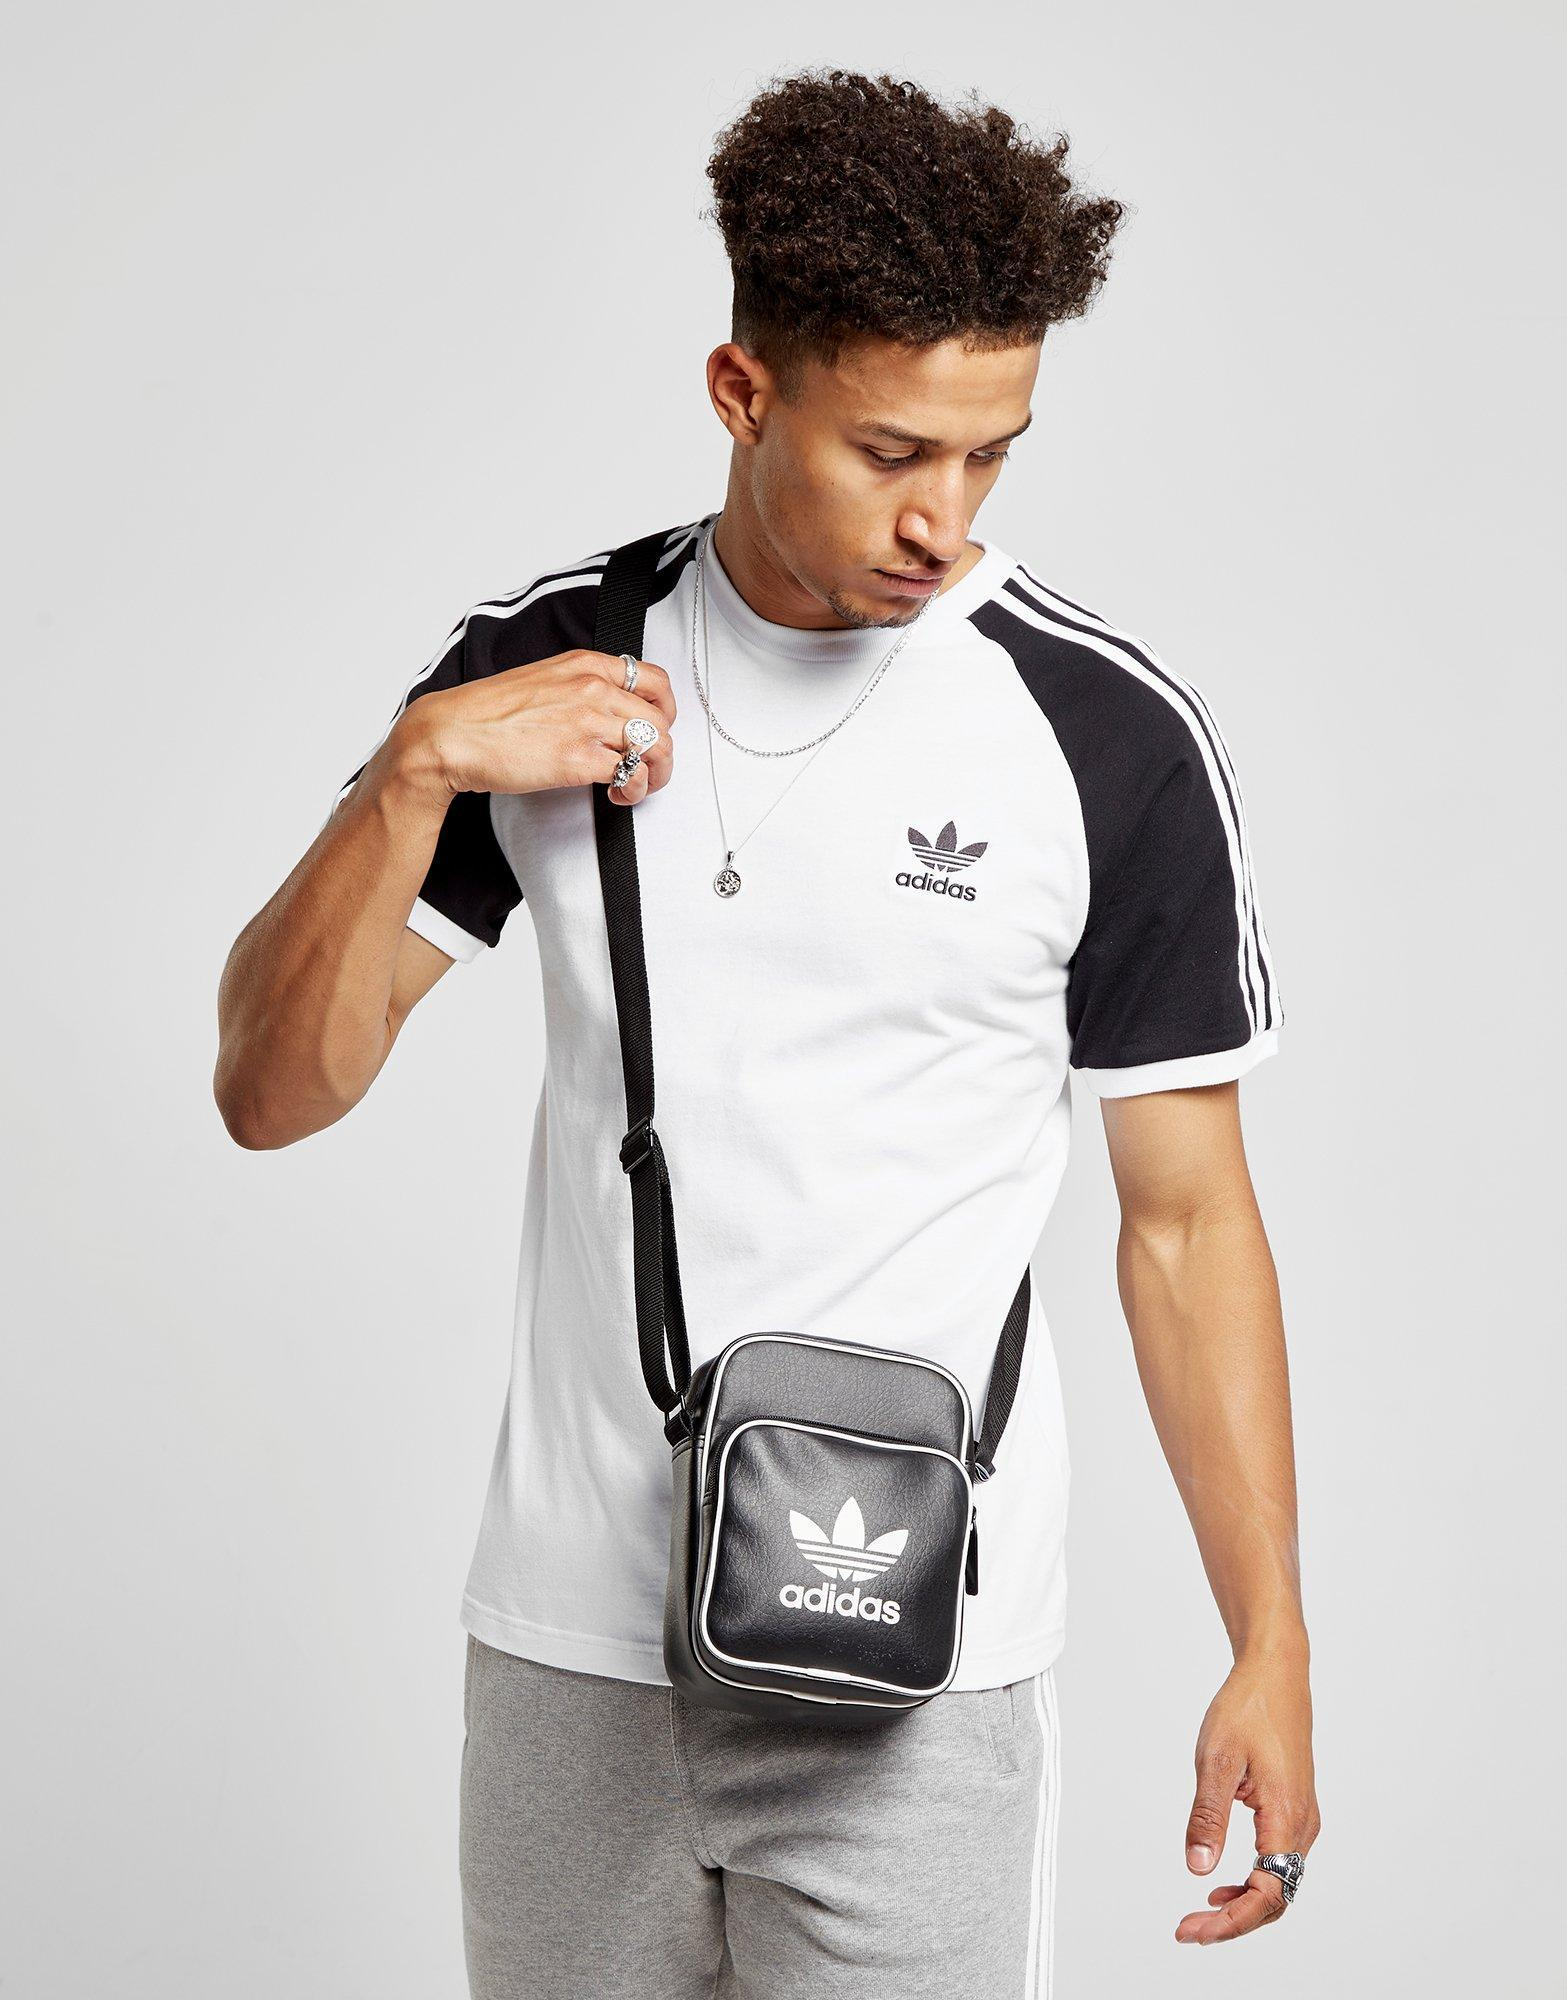 a743069b4e Lyst - adidas Originals Classic Mini Bag in Black for Men